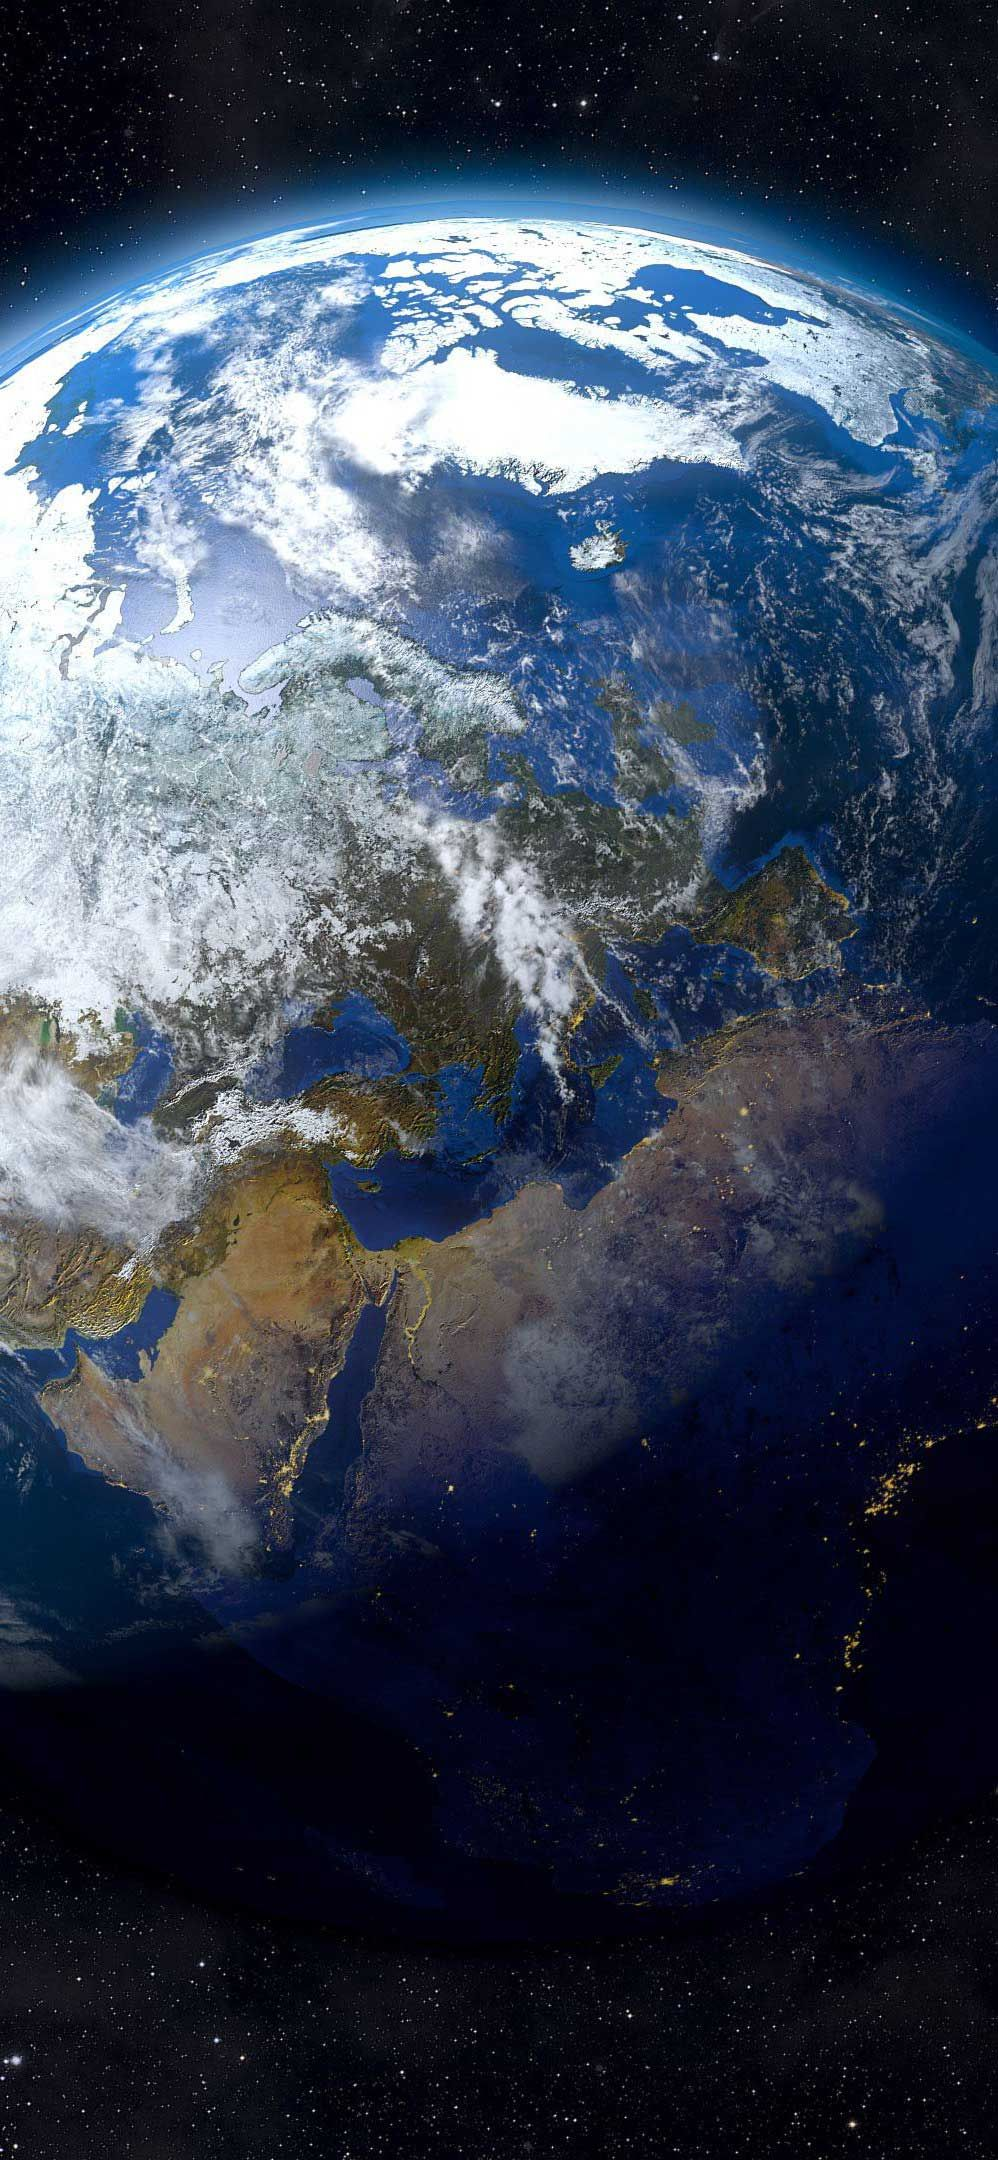 Iphone Wallpaper Earth From Space K Ultra Hd Desktop Wallpaper Hd In 2020 Wallpaper Earth Wallpaper Space Iphone Wallpaper Earth